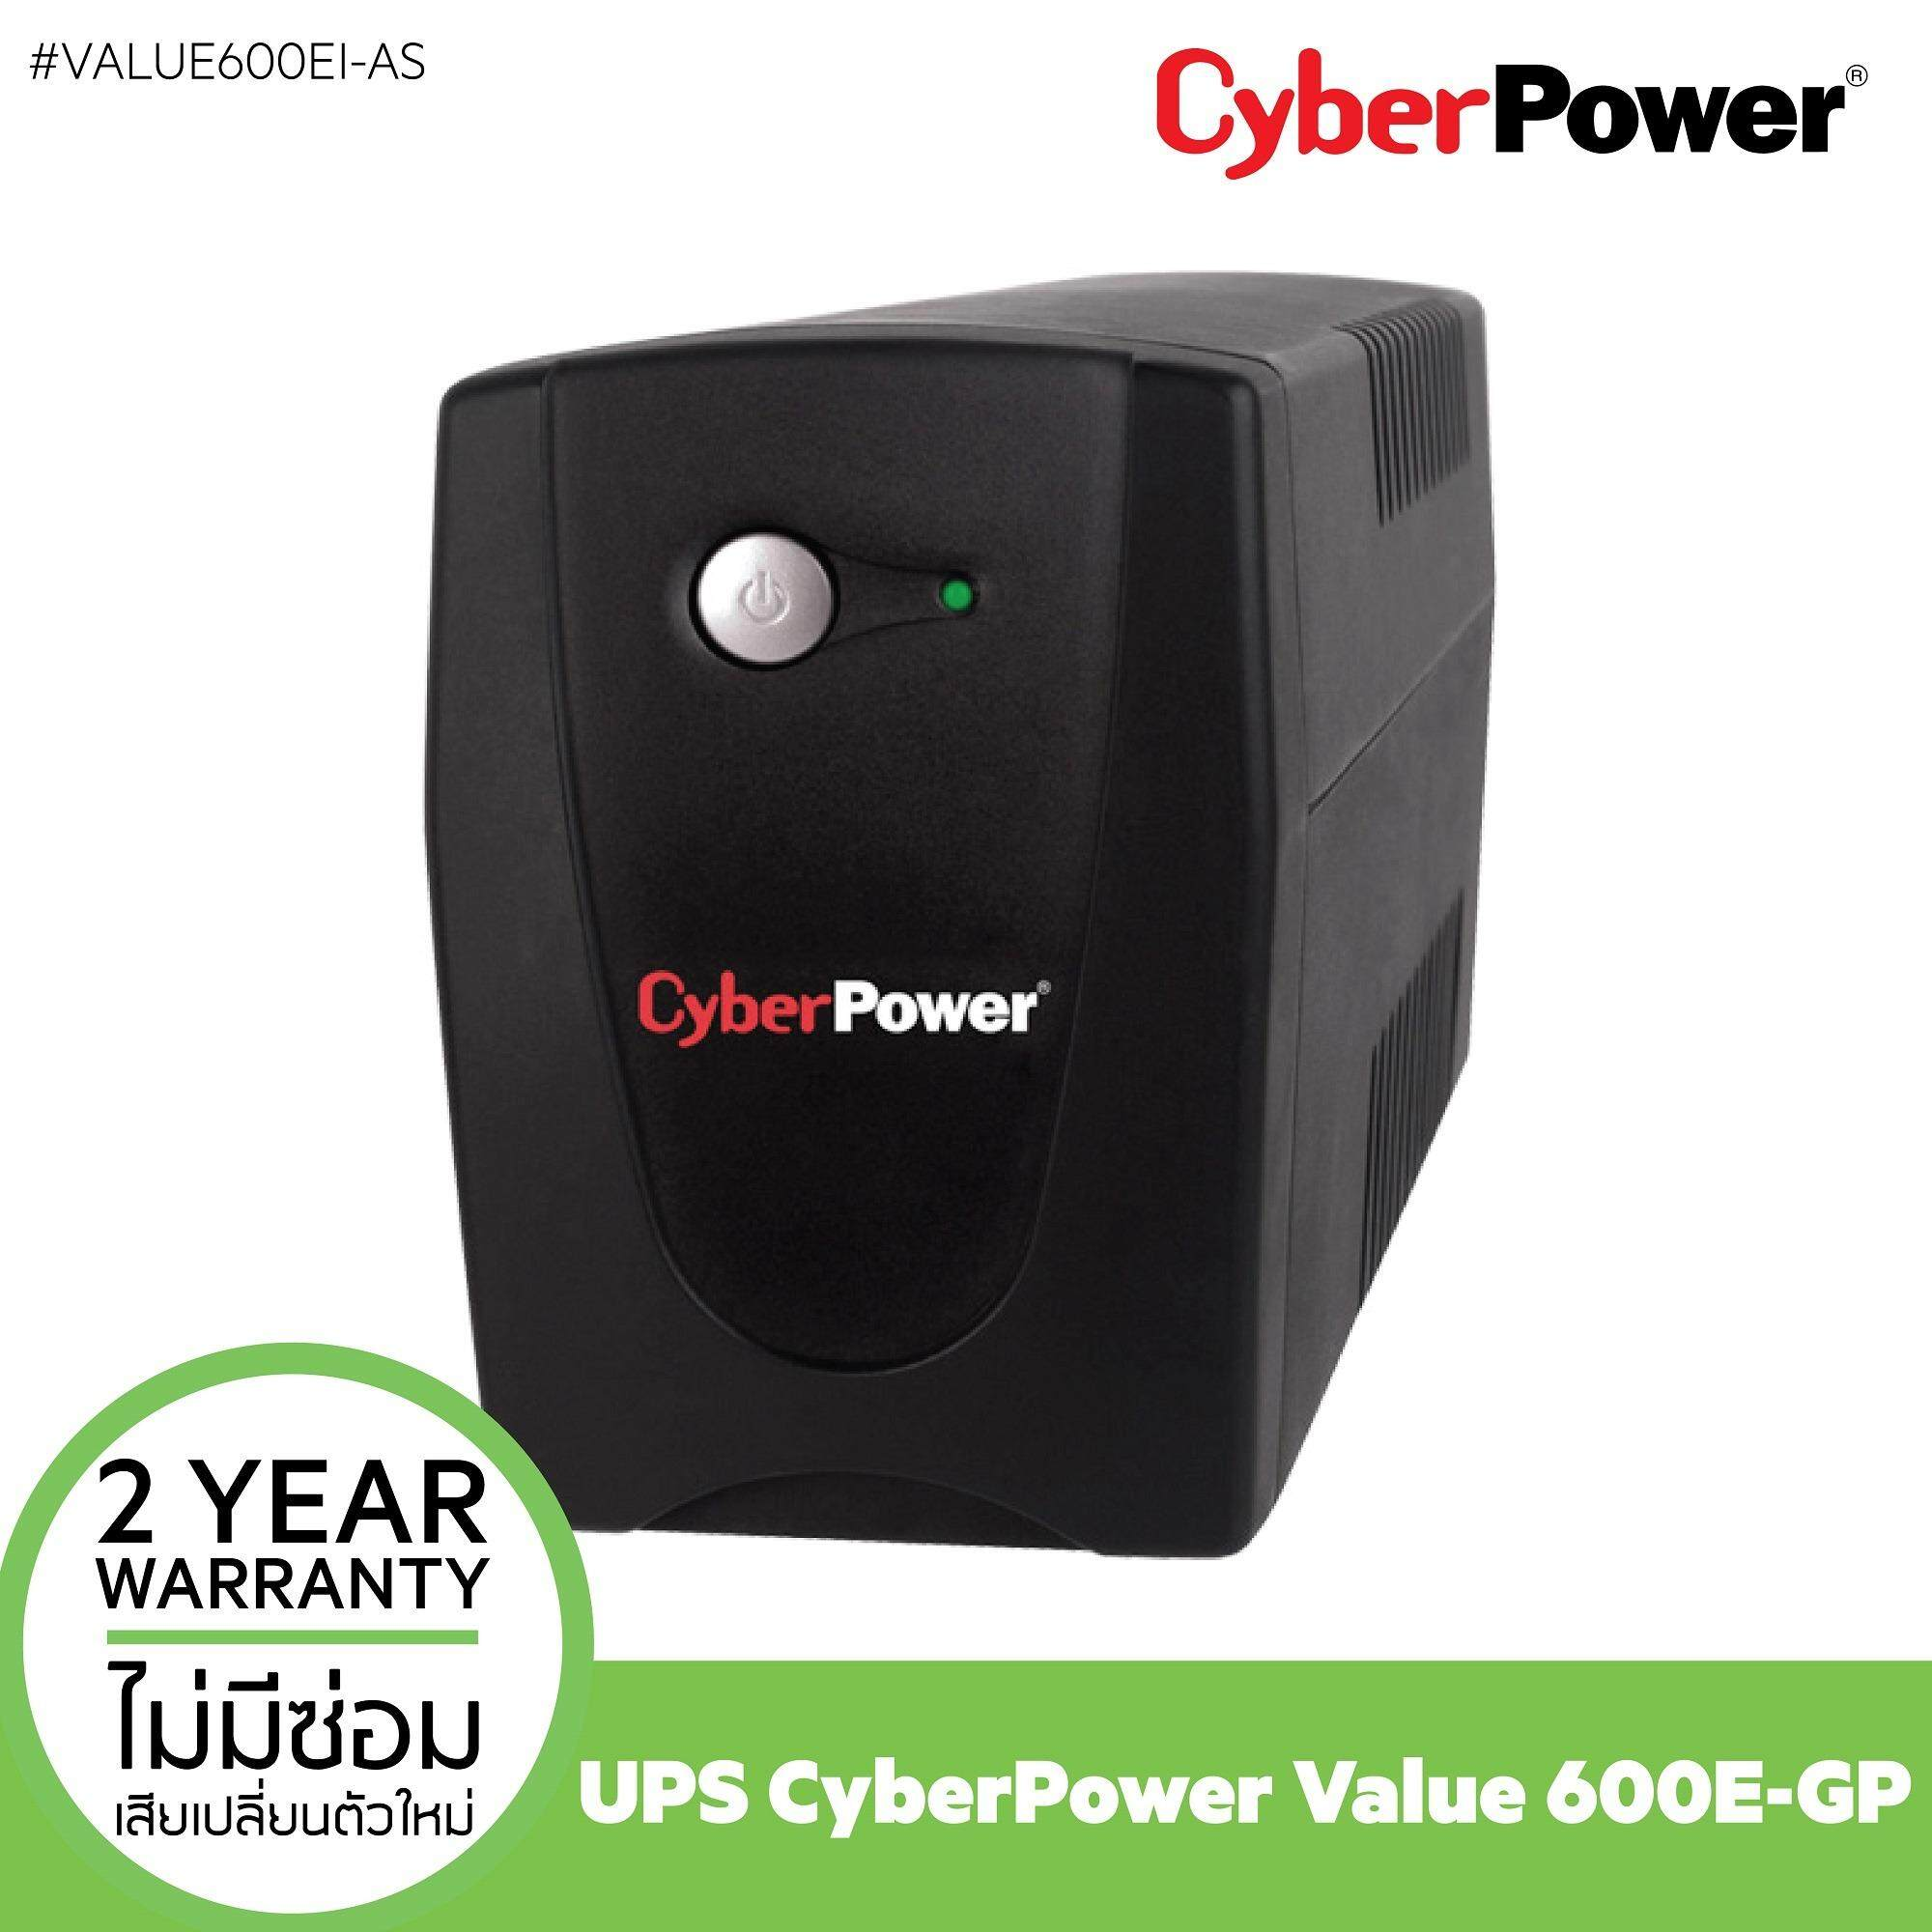 ราคา Cyberpower 600Va 360W 3 Outlets 2 Phone Fax Modem Dsl Network 1 Usb And Serial Port 1 Battery Value600Ei As ใหม่